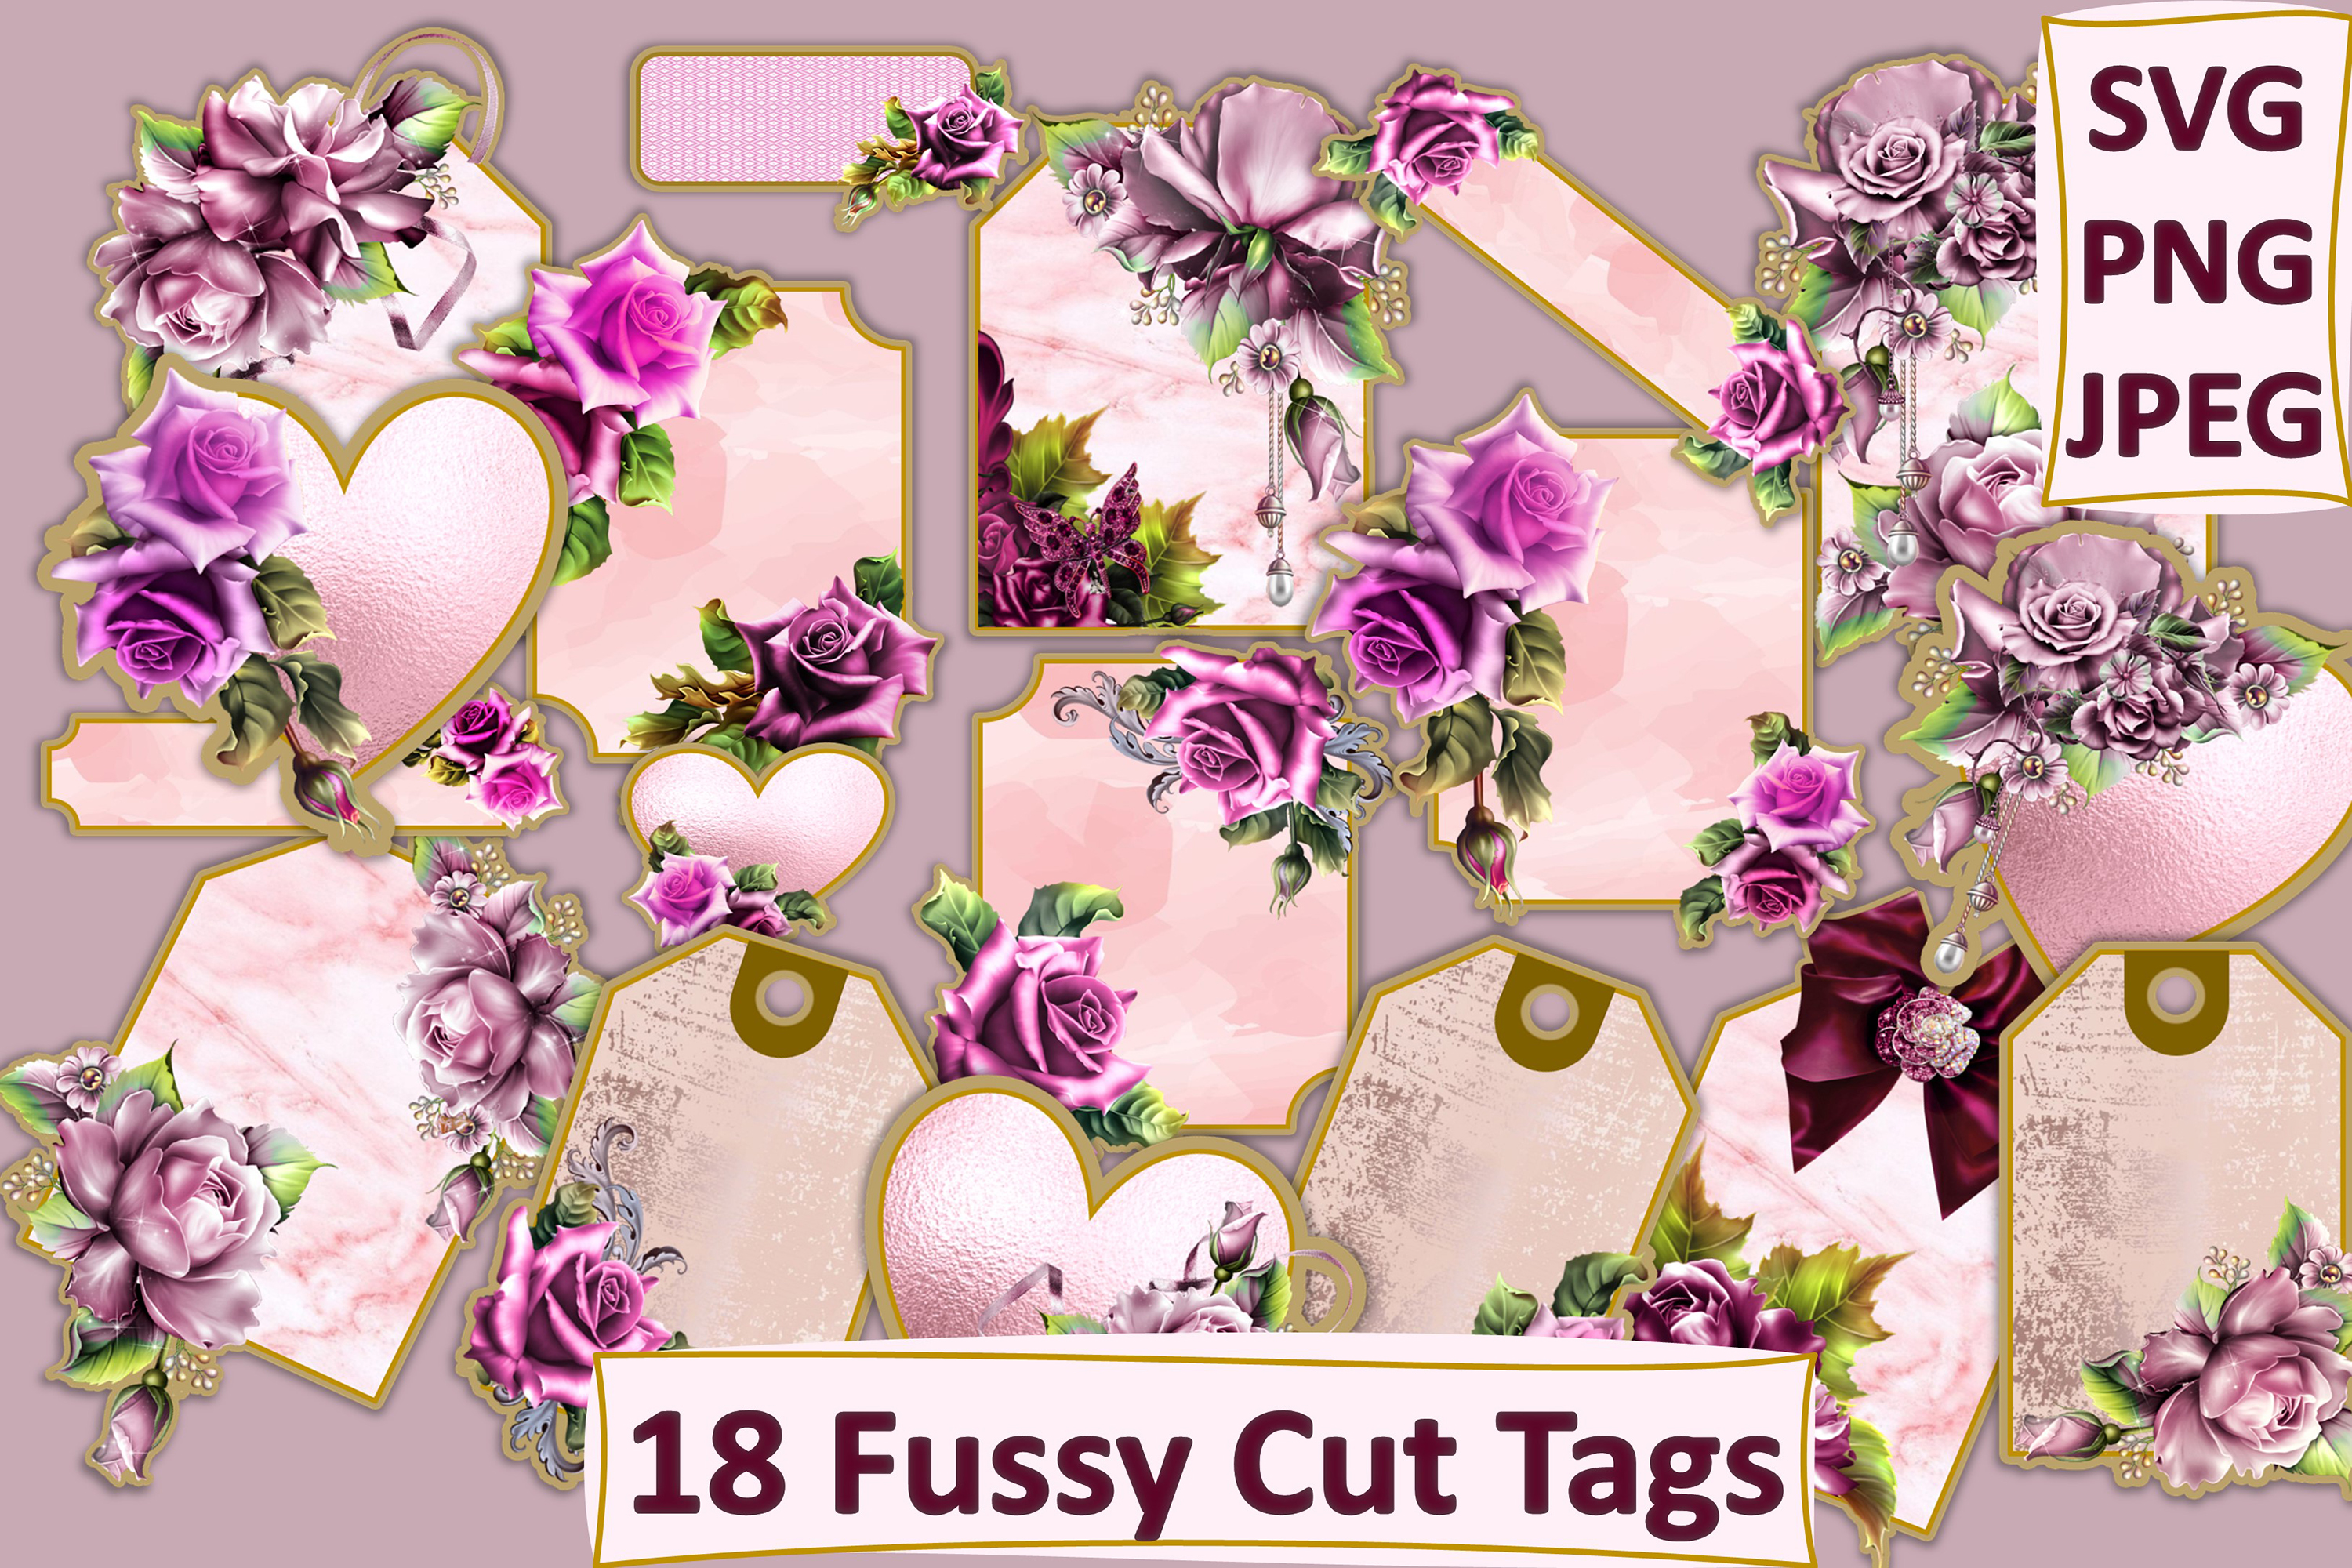 18 Fussy Cut Tags SVG PNG and... SVG File